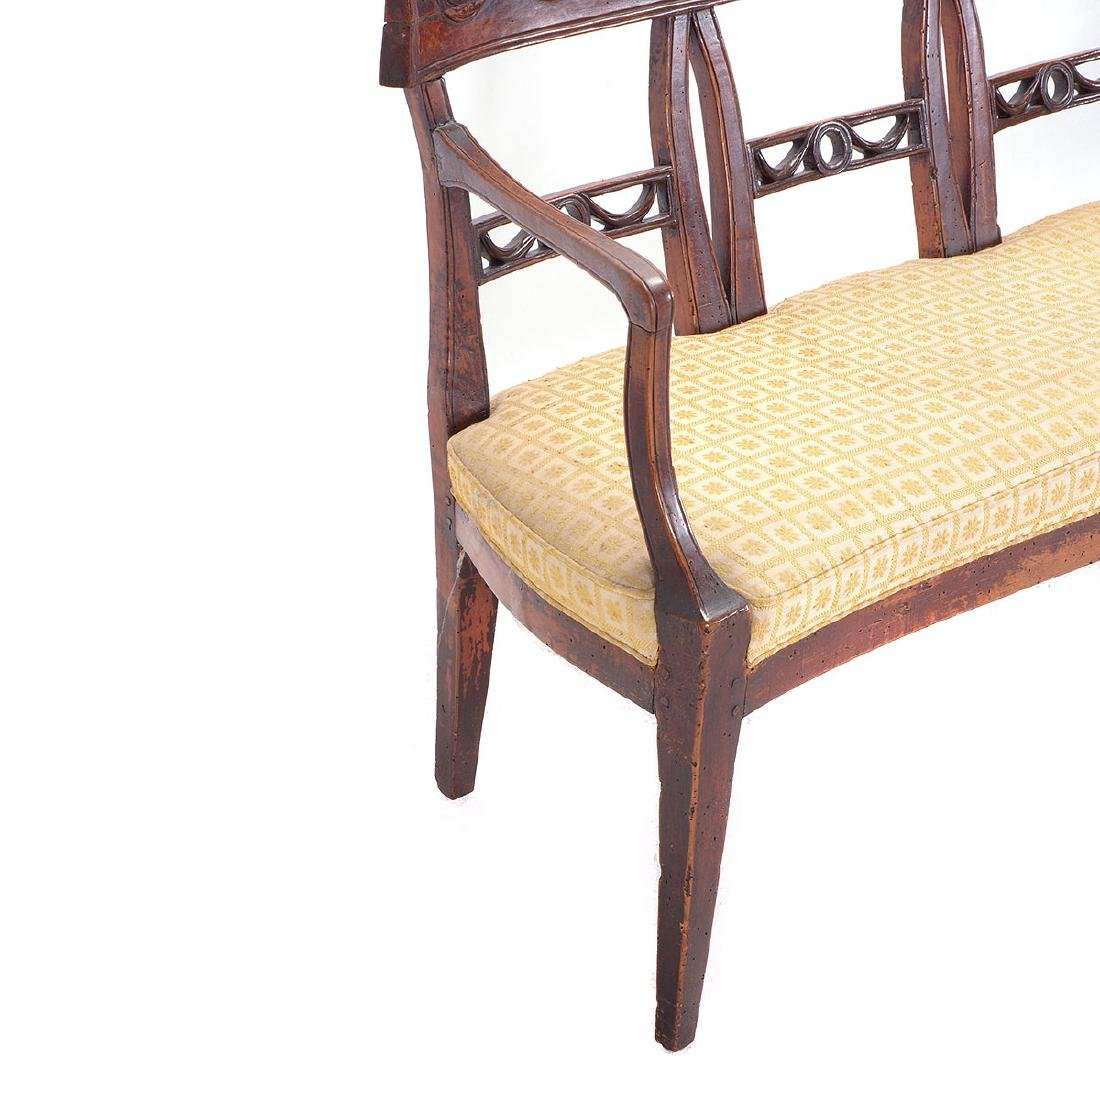 Italian Neoclassical Walnut Quadruple Chair Back - 2